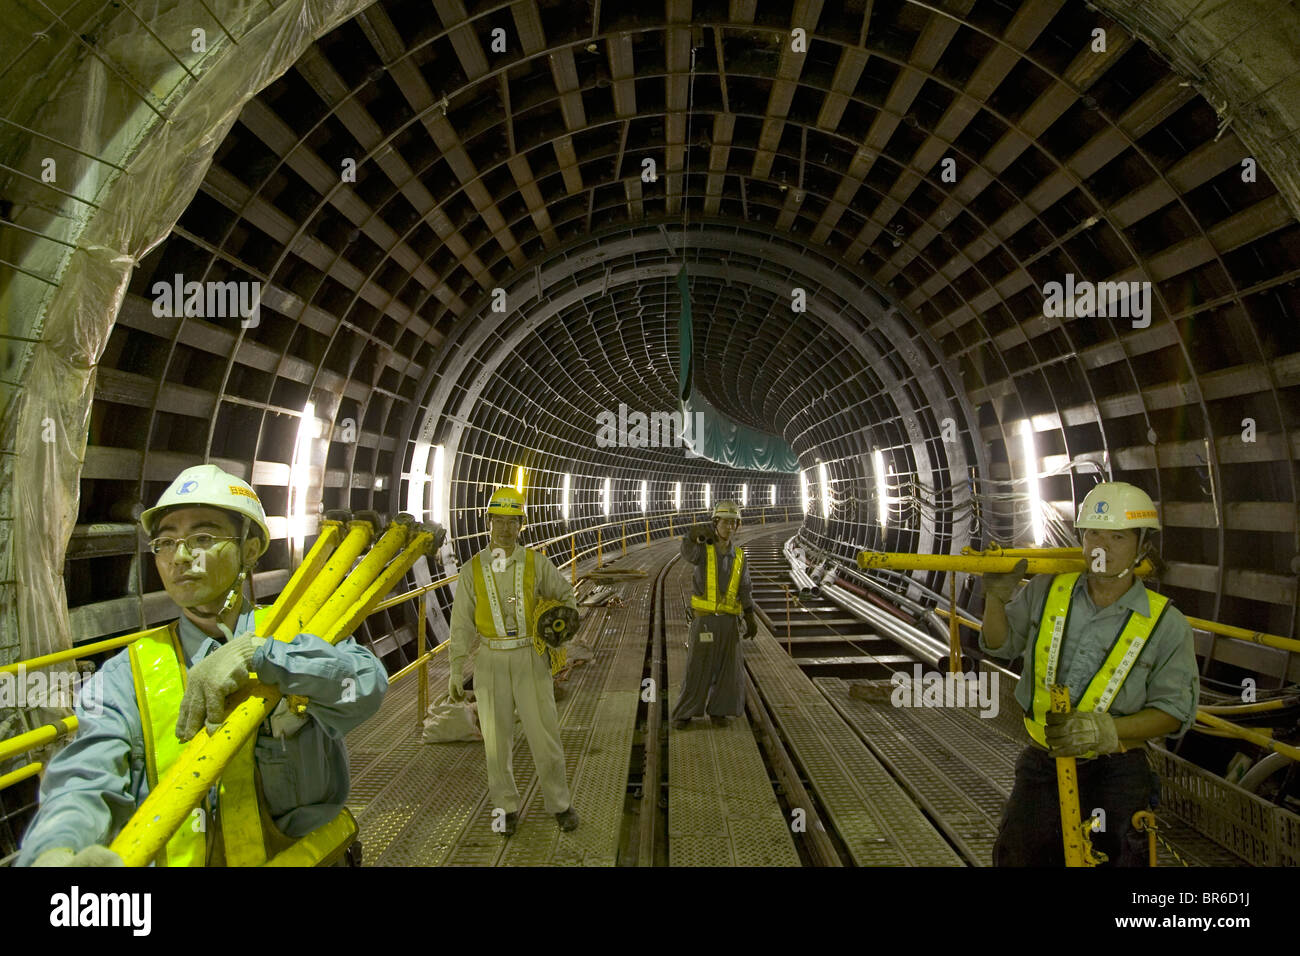 Workers in common utility duct Tokyo Japan. - Stock Image